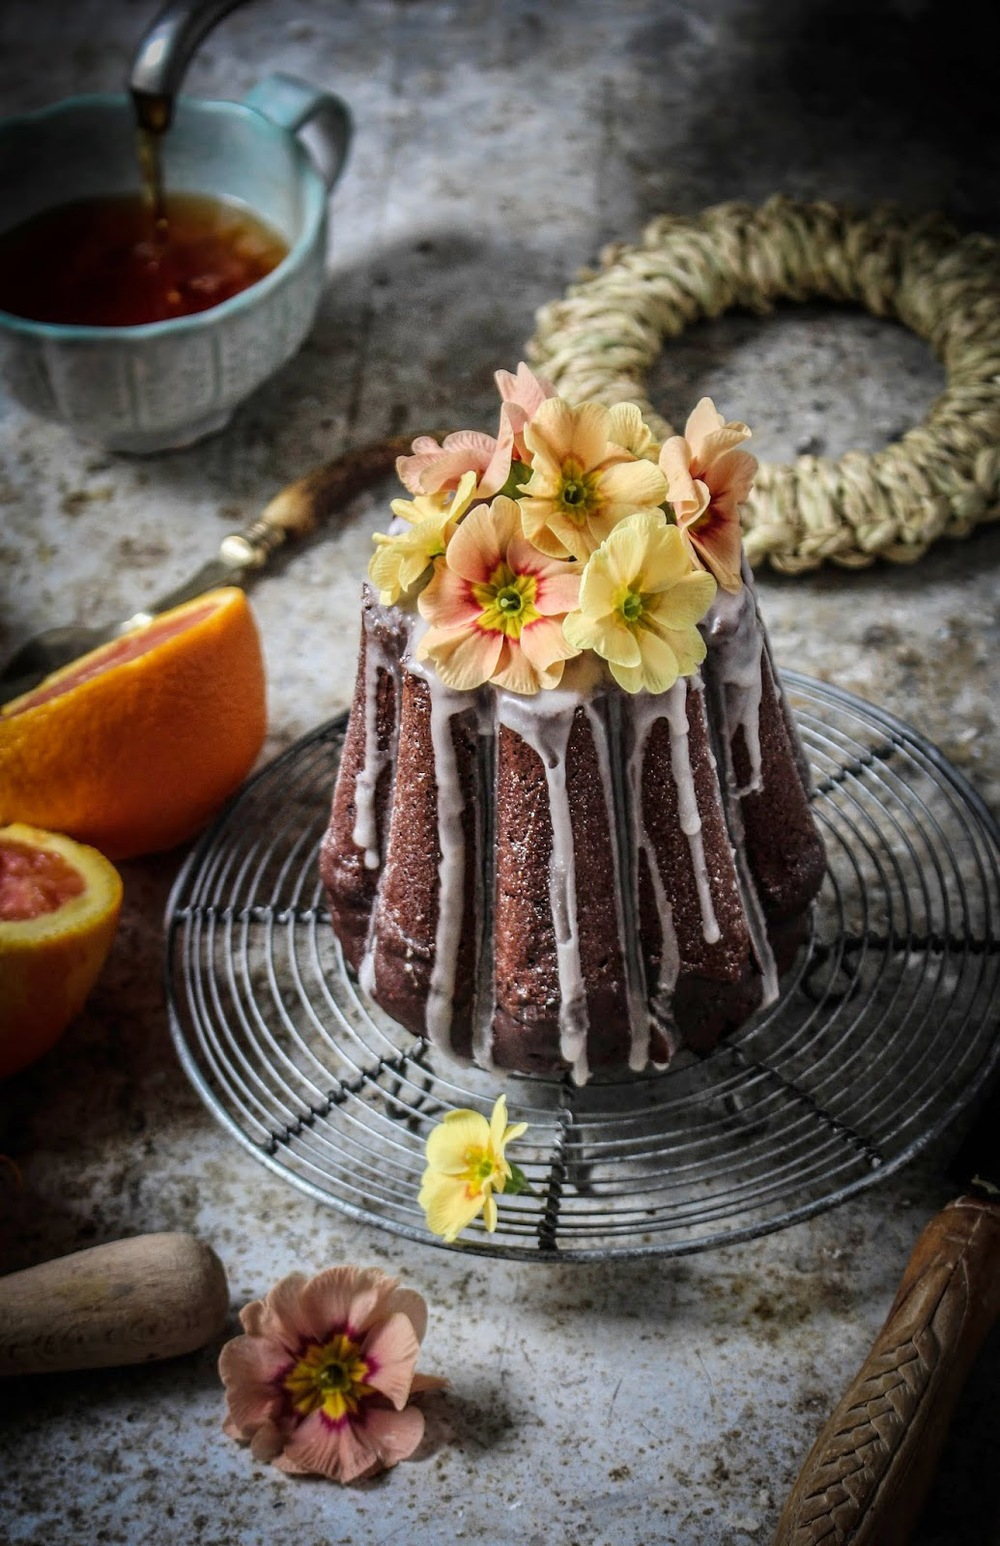 Blood Orange Chocolate Cake with Cocoa Nibs, Twigg Studios